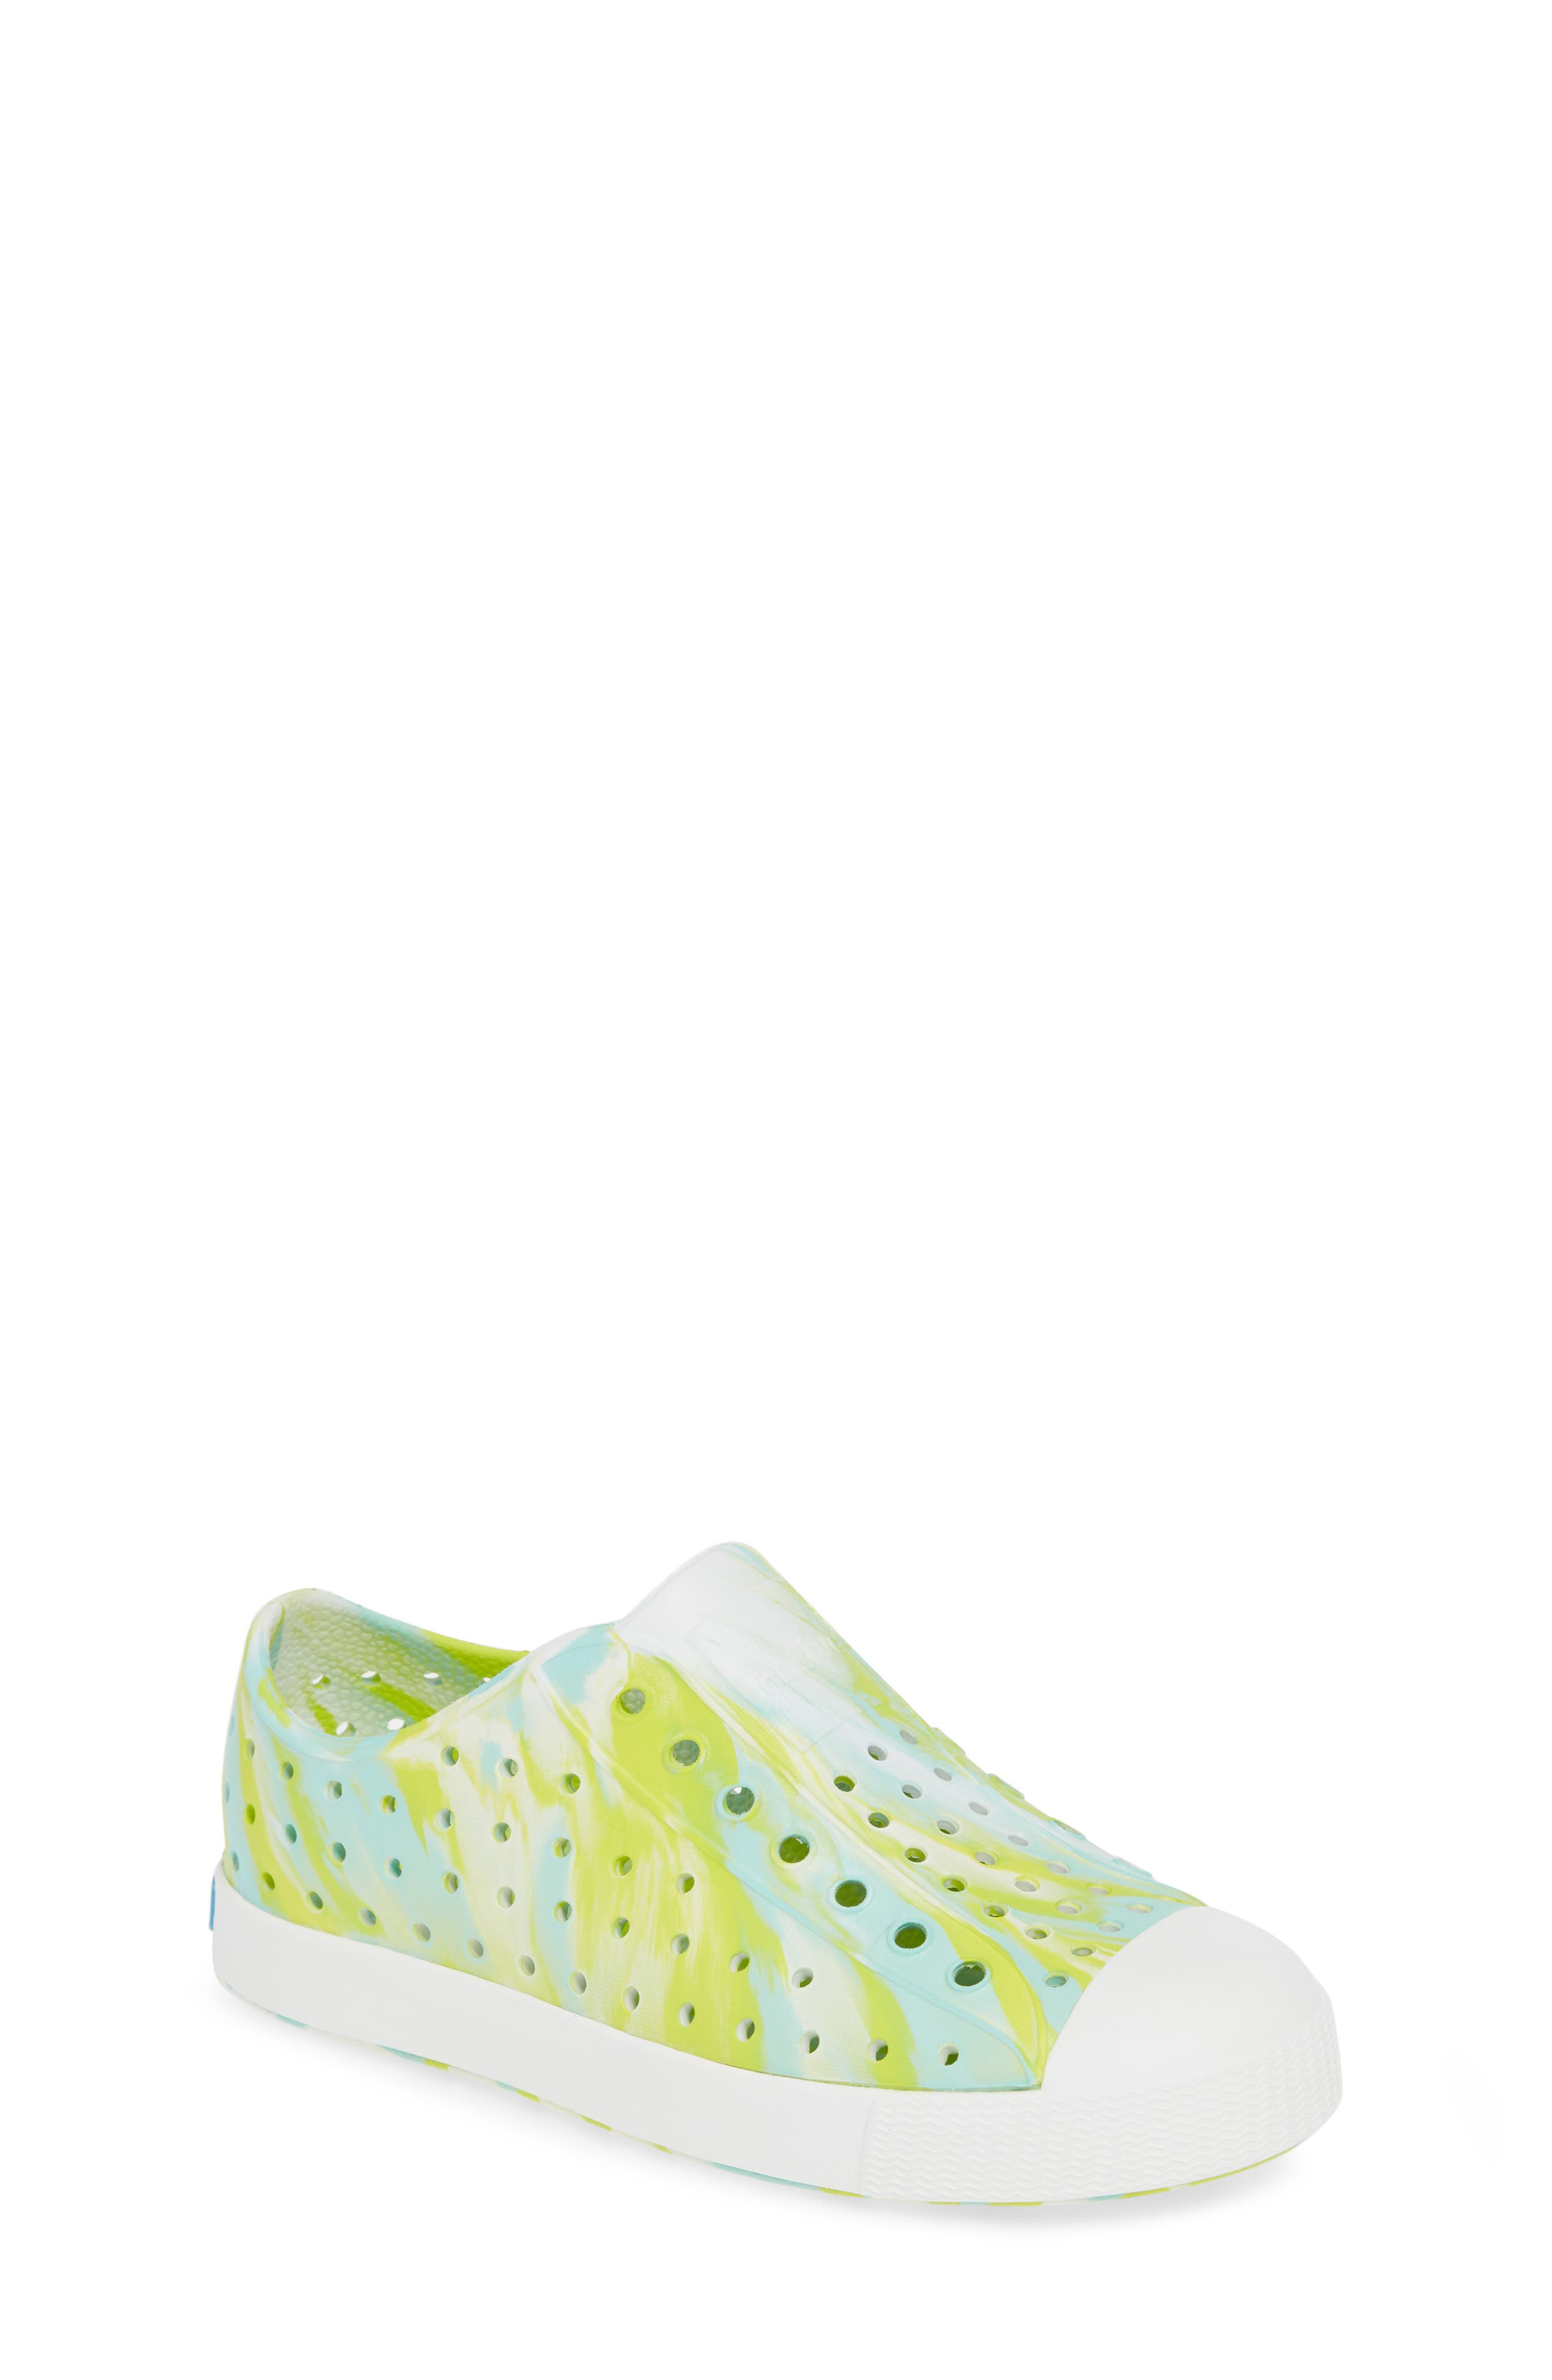 Native Shoes Jefferson - Marbled Perforated Slip-On